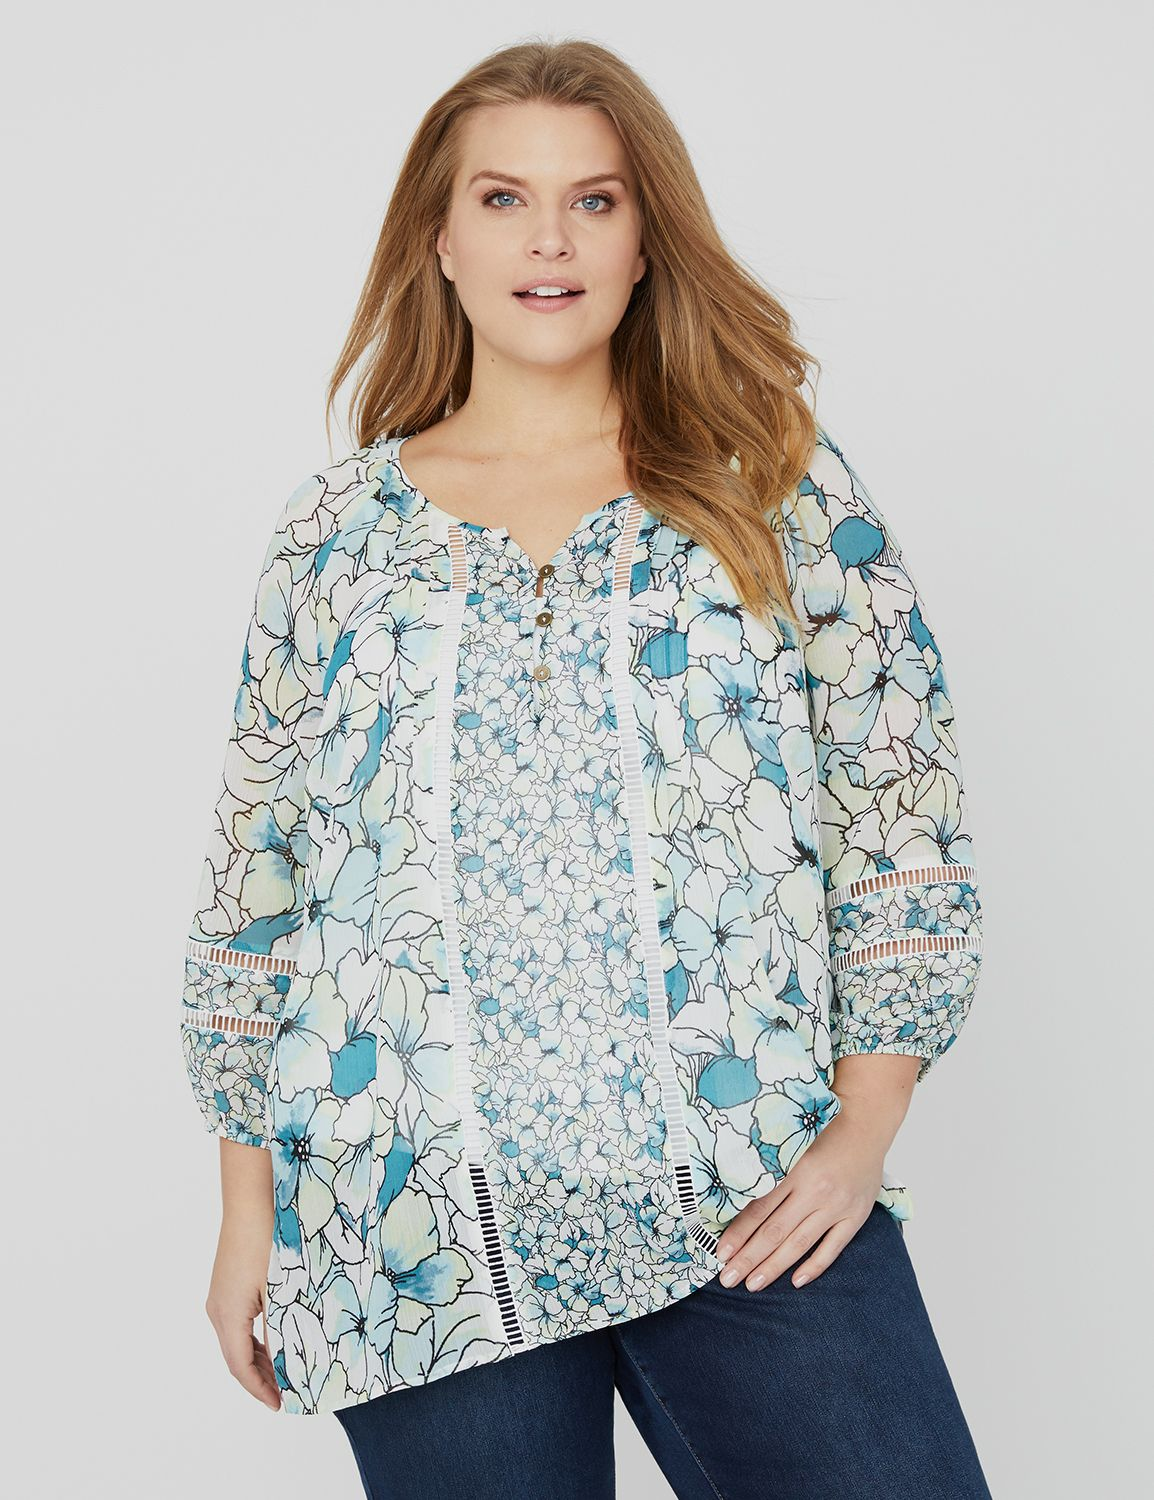 Floral Courtyard Blouse Floral Courtyard Blouse MP-300103575